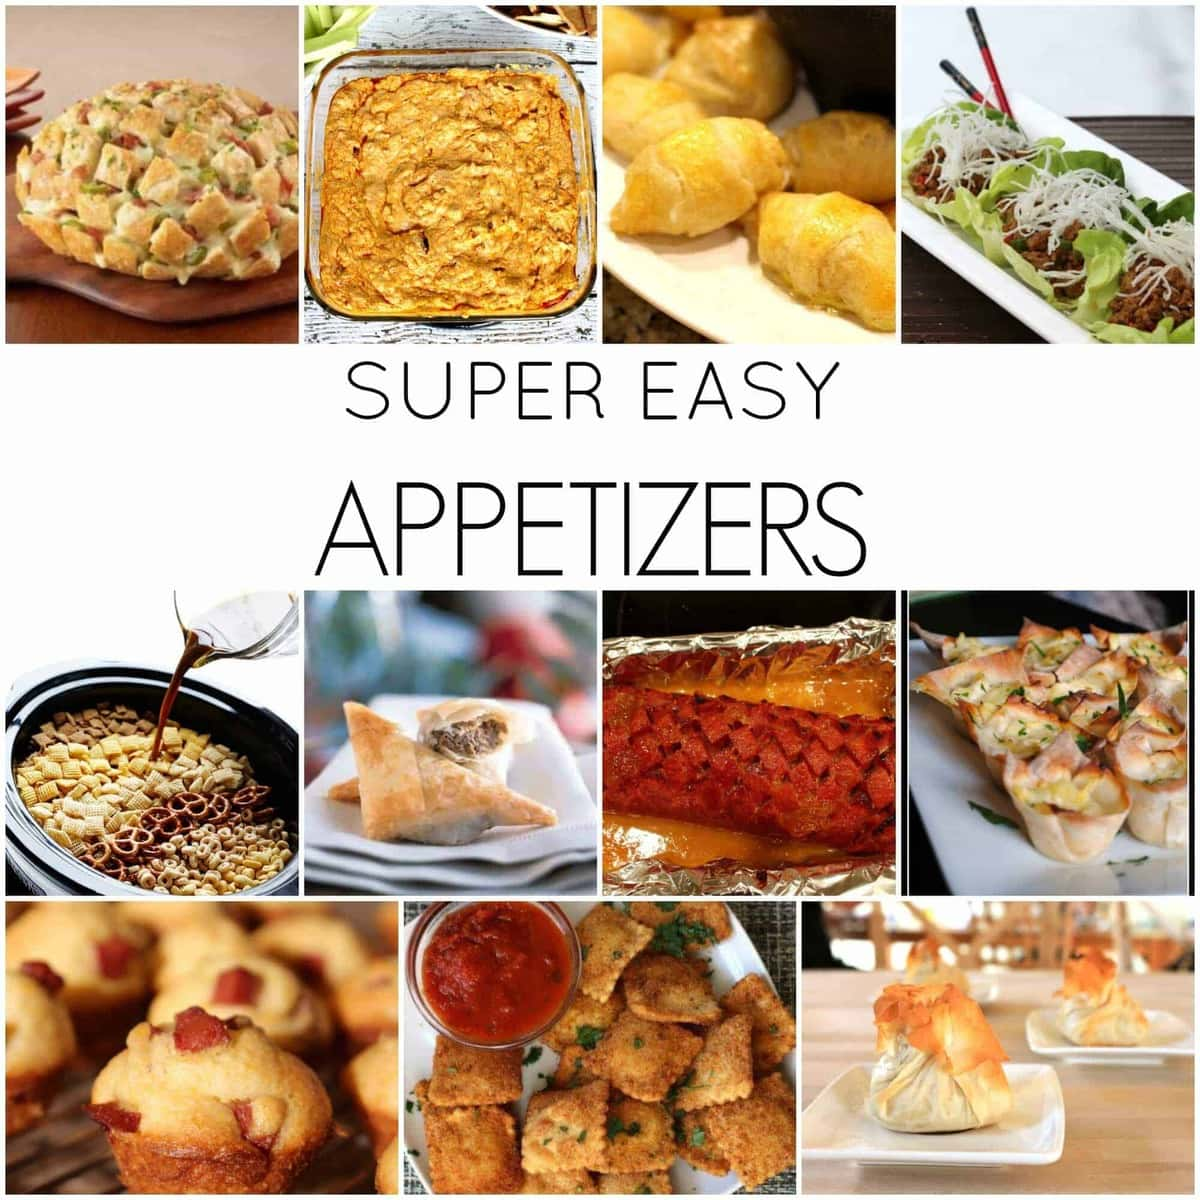 Easy Appetizers For New Year's Eve!